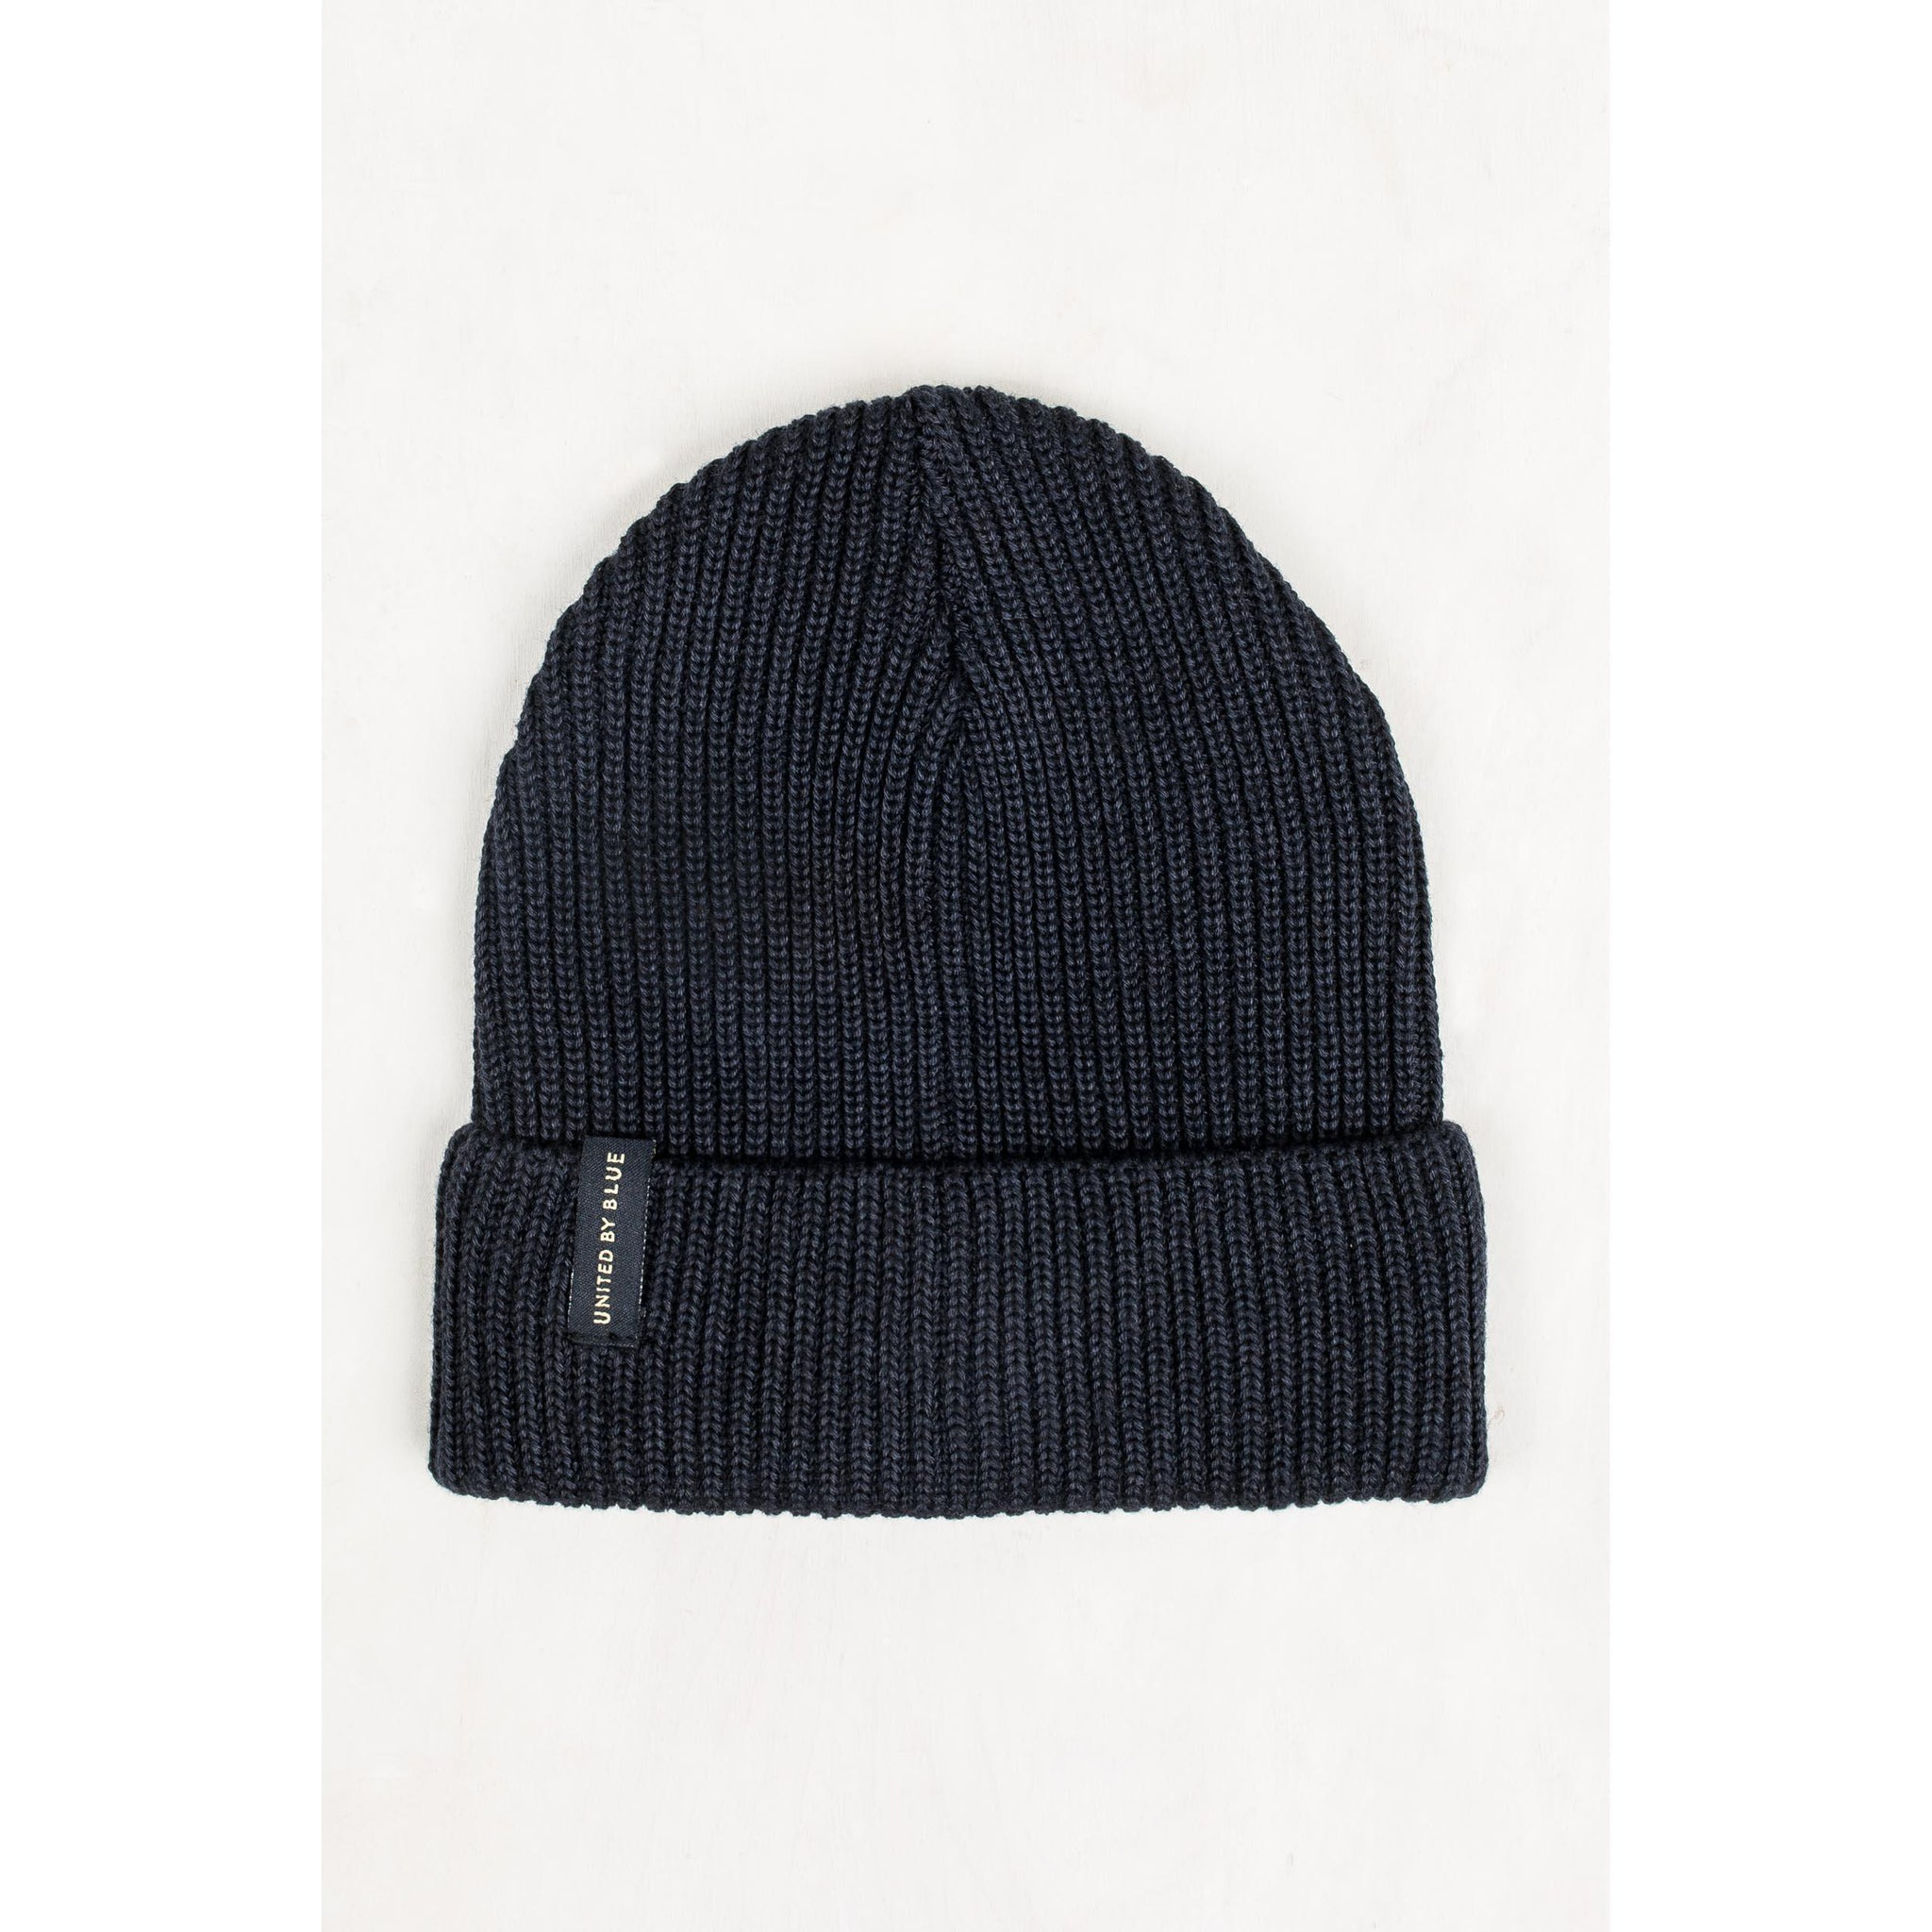 United By Blue Mariner Beanie-Apparel-United By Blue-Navy-GetOutland.com